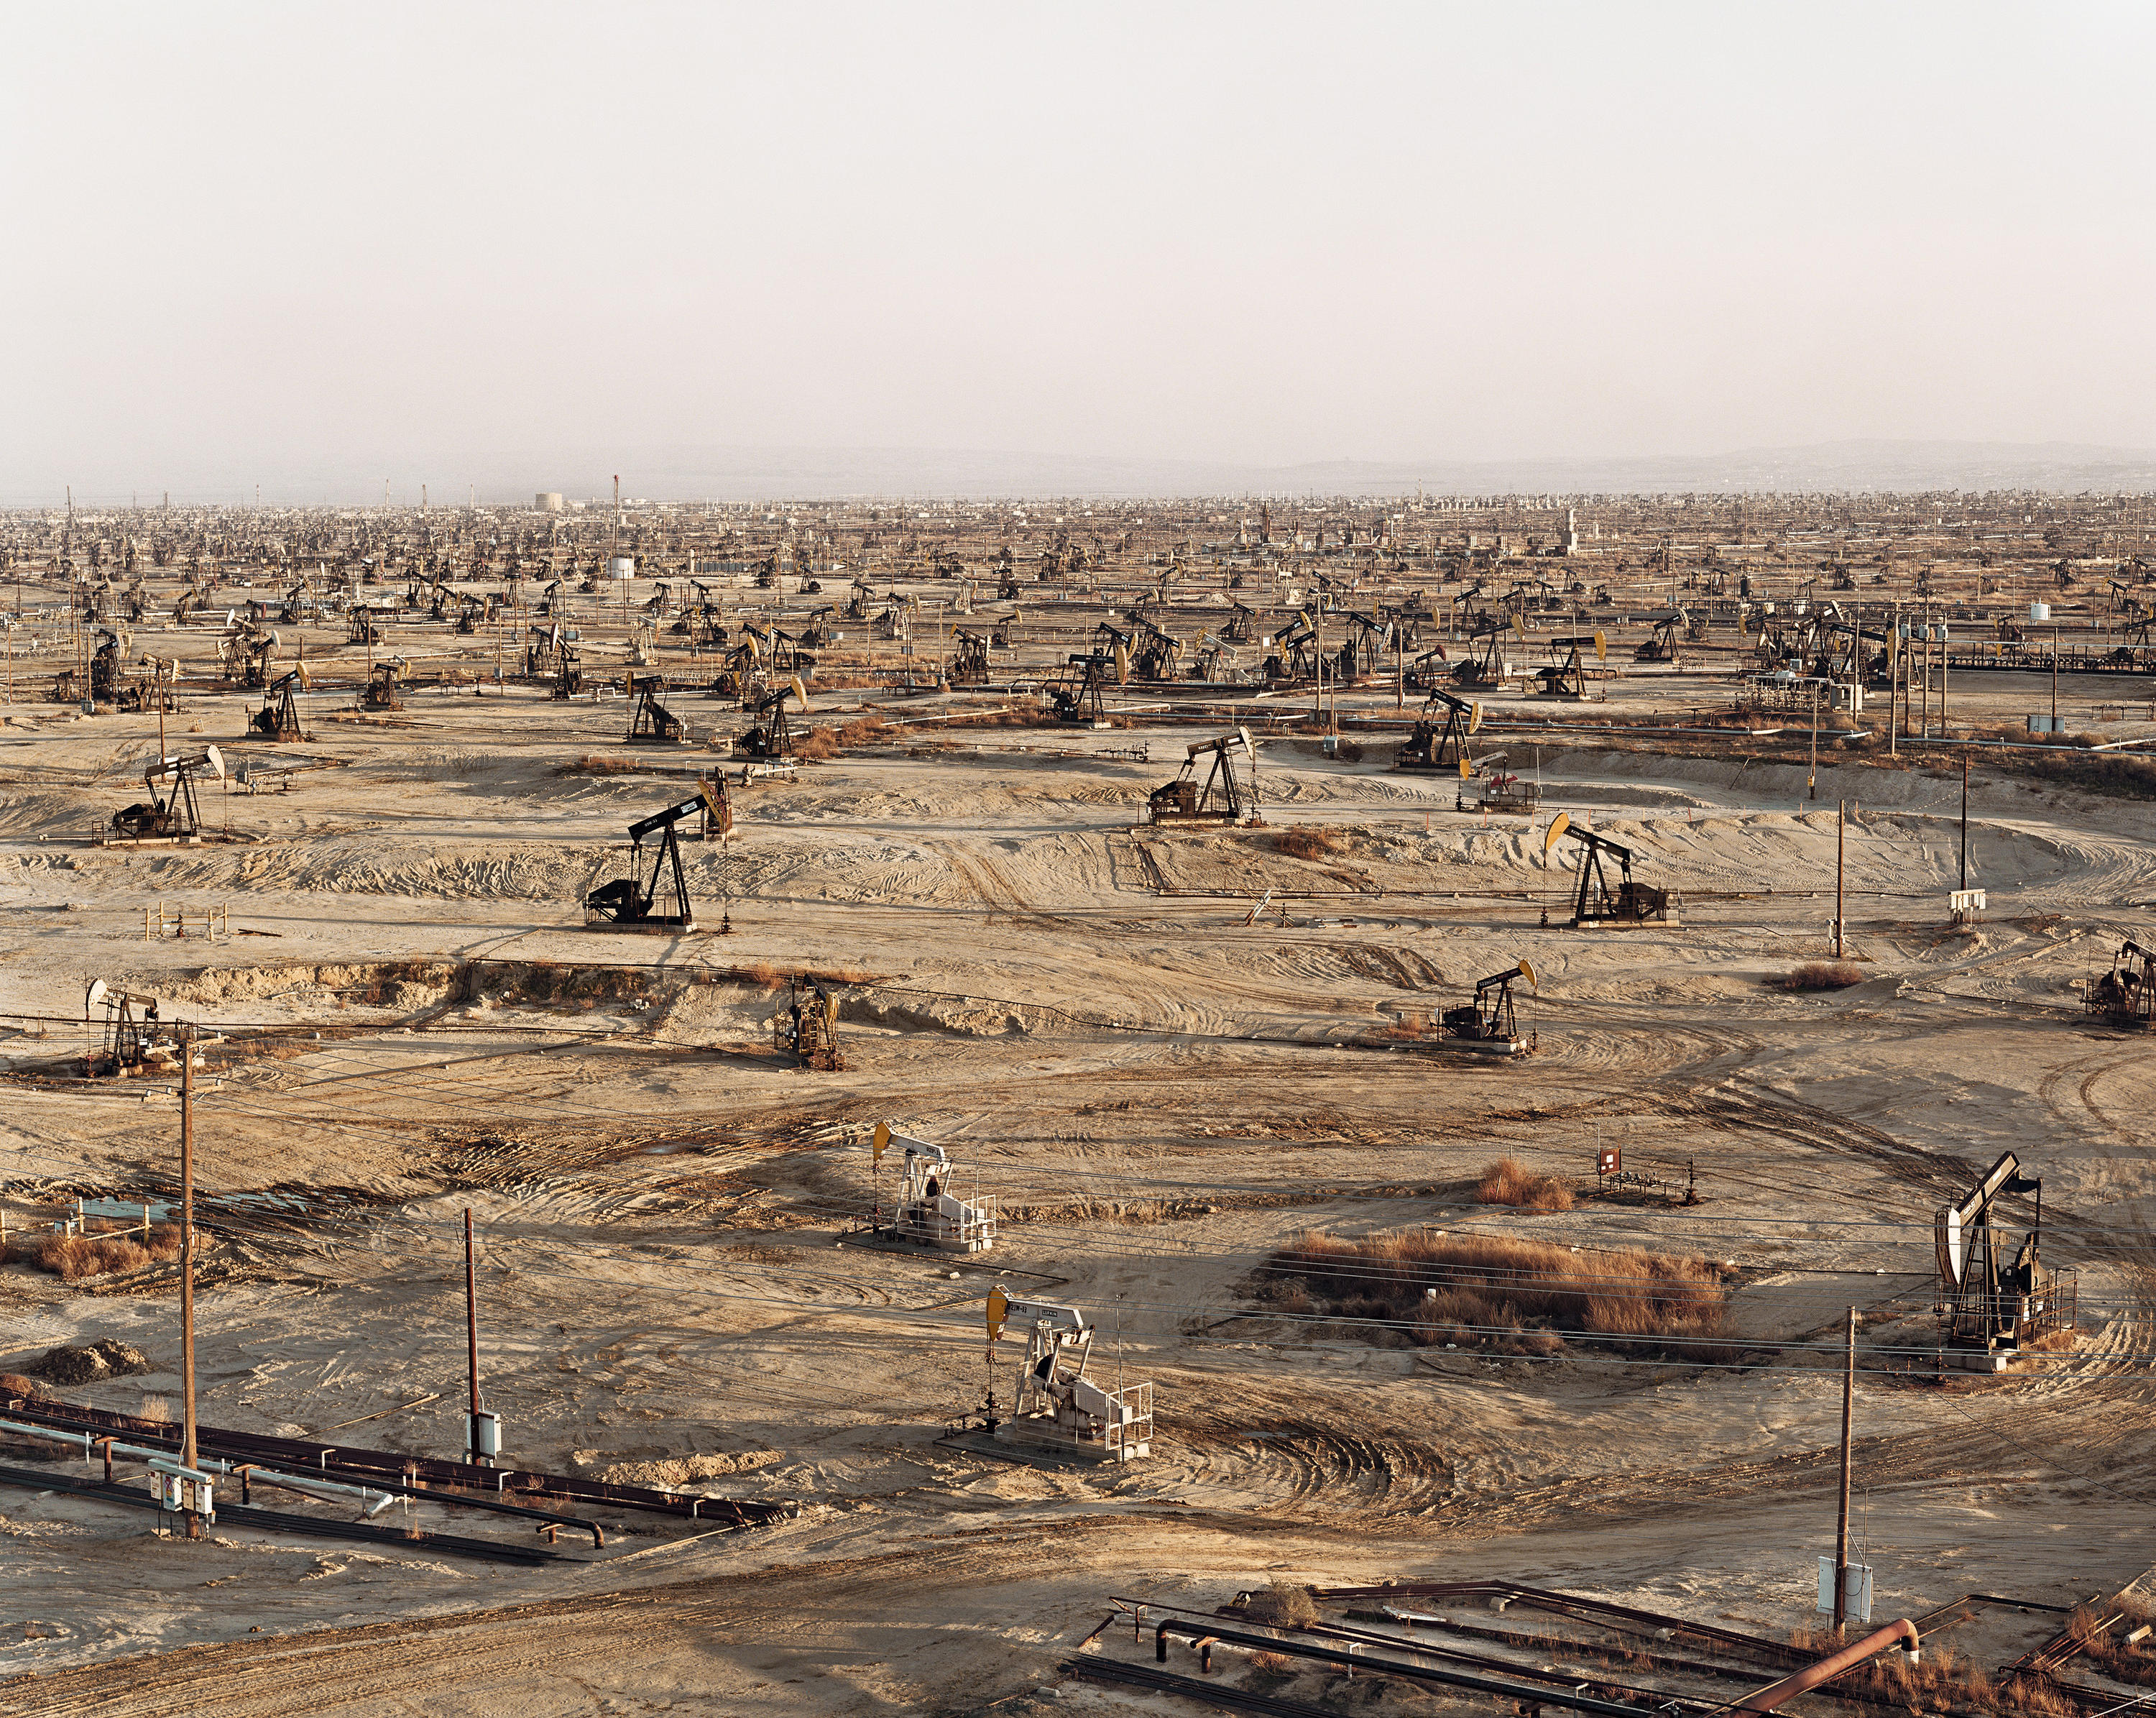 Dirt field of oil derriks